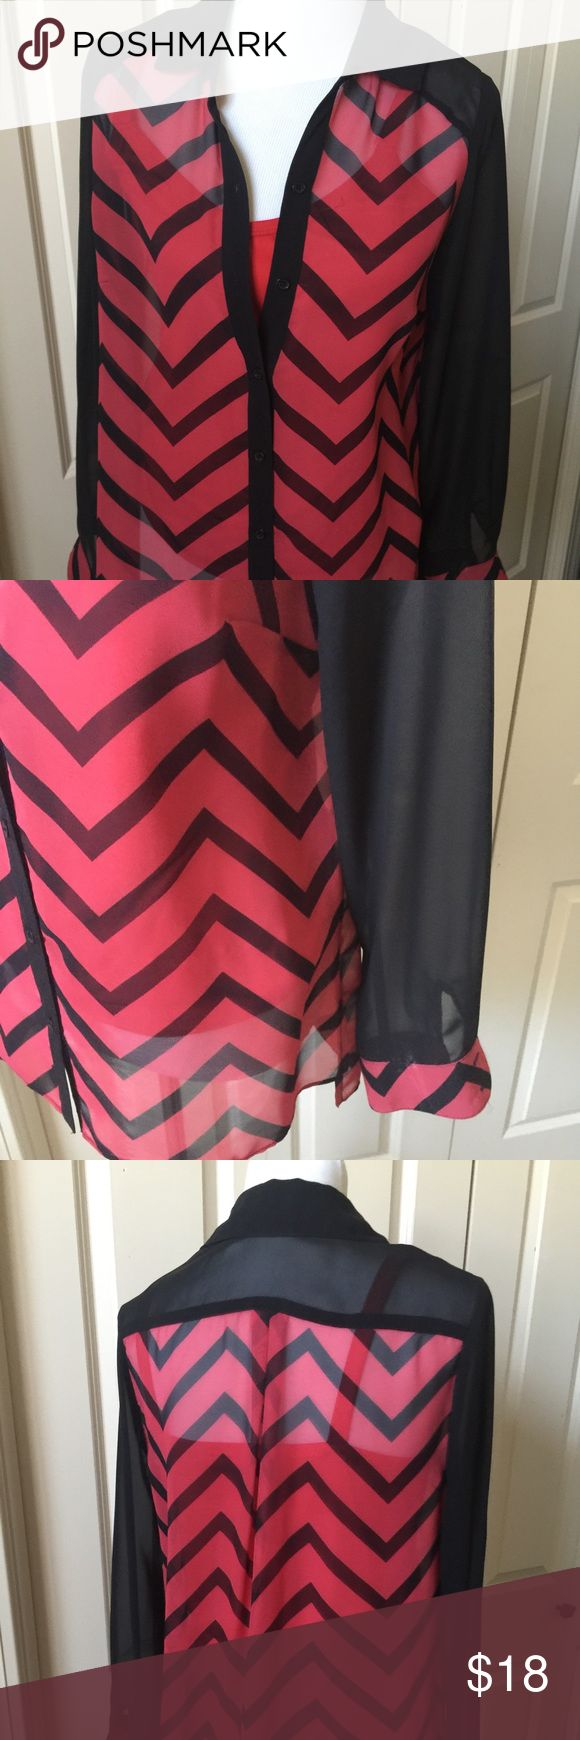 Red and Black Chevron Blouse and Cami Sheer button down Blouse with attached Cami I.N. Studio Tops Blouses